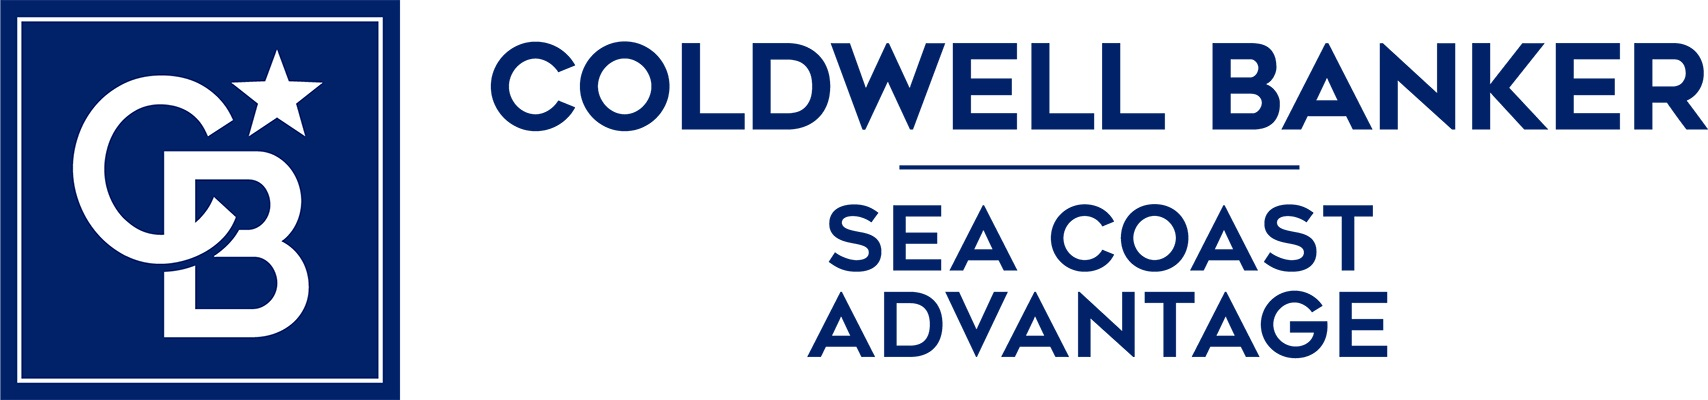 Emily Rideout - Coldwell Banker Sea Coast Advantage Realty